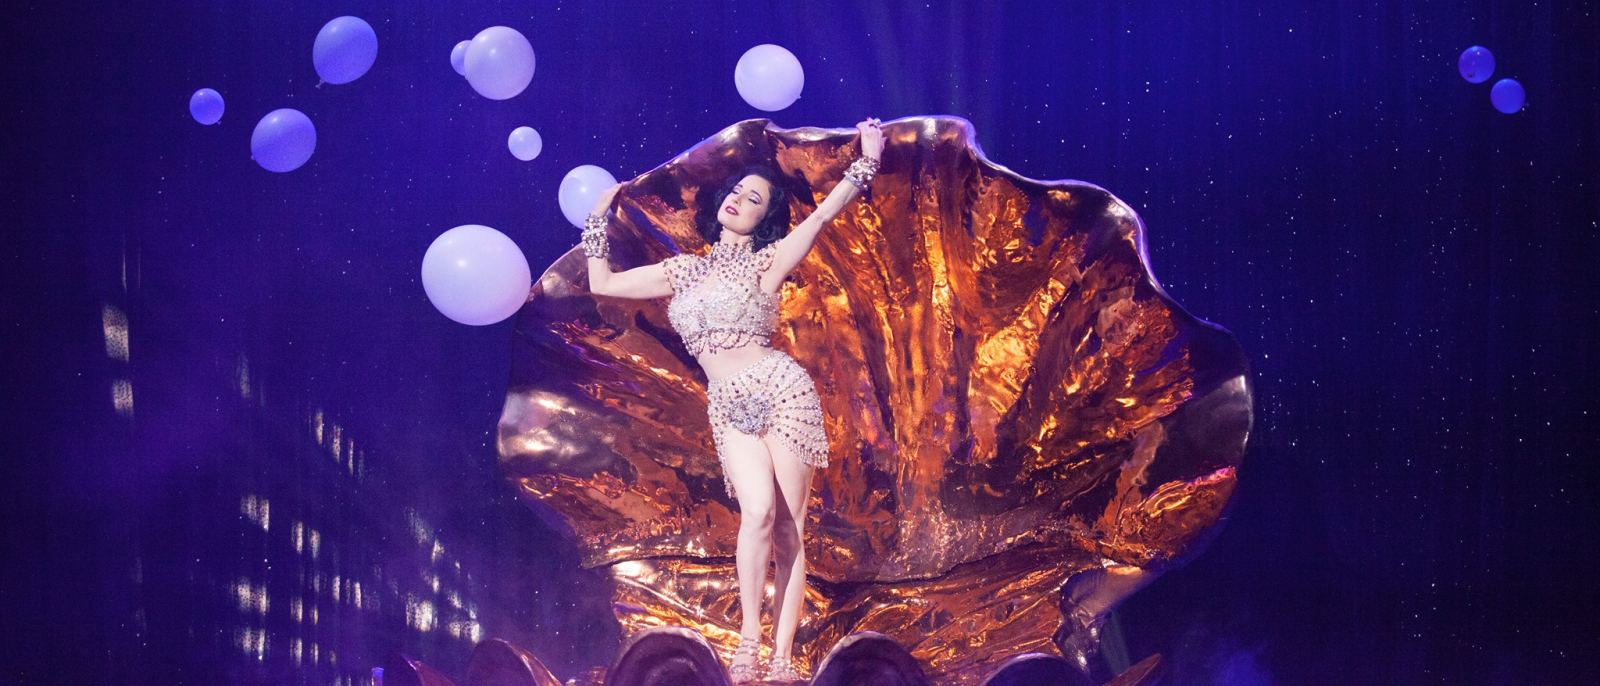 Dita Von Teese on stage in a clam shell